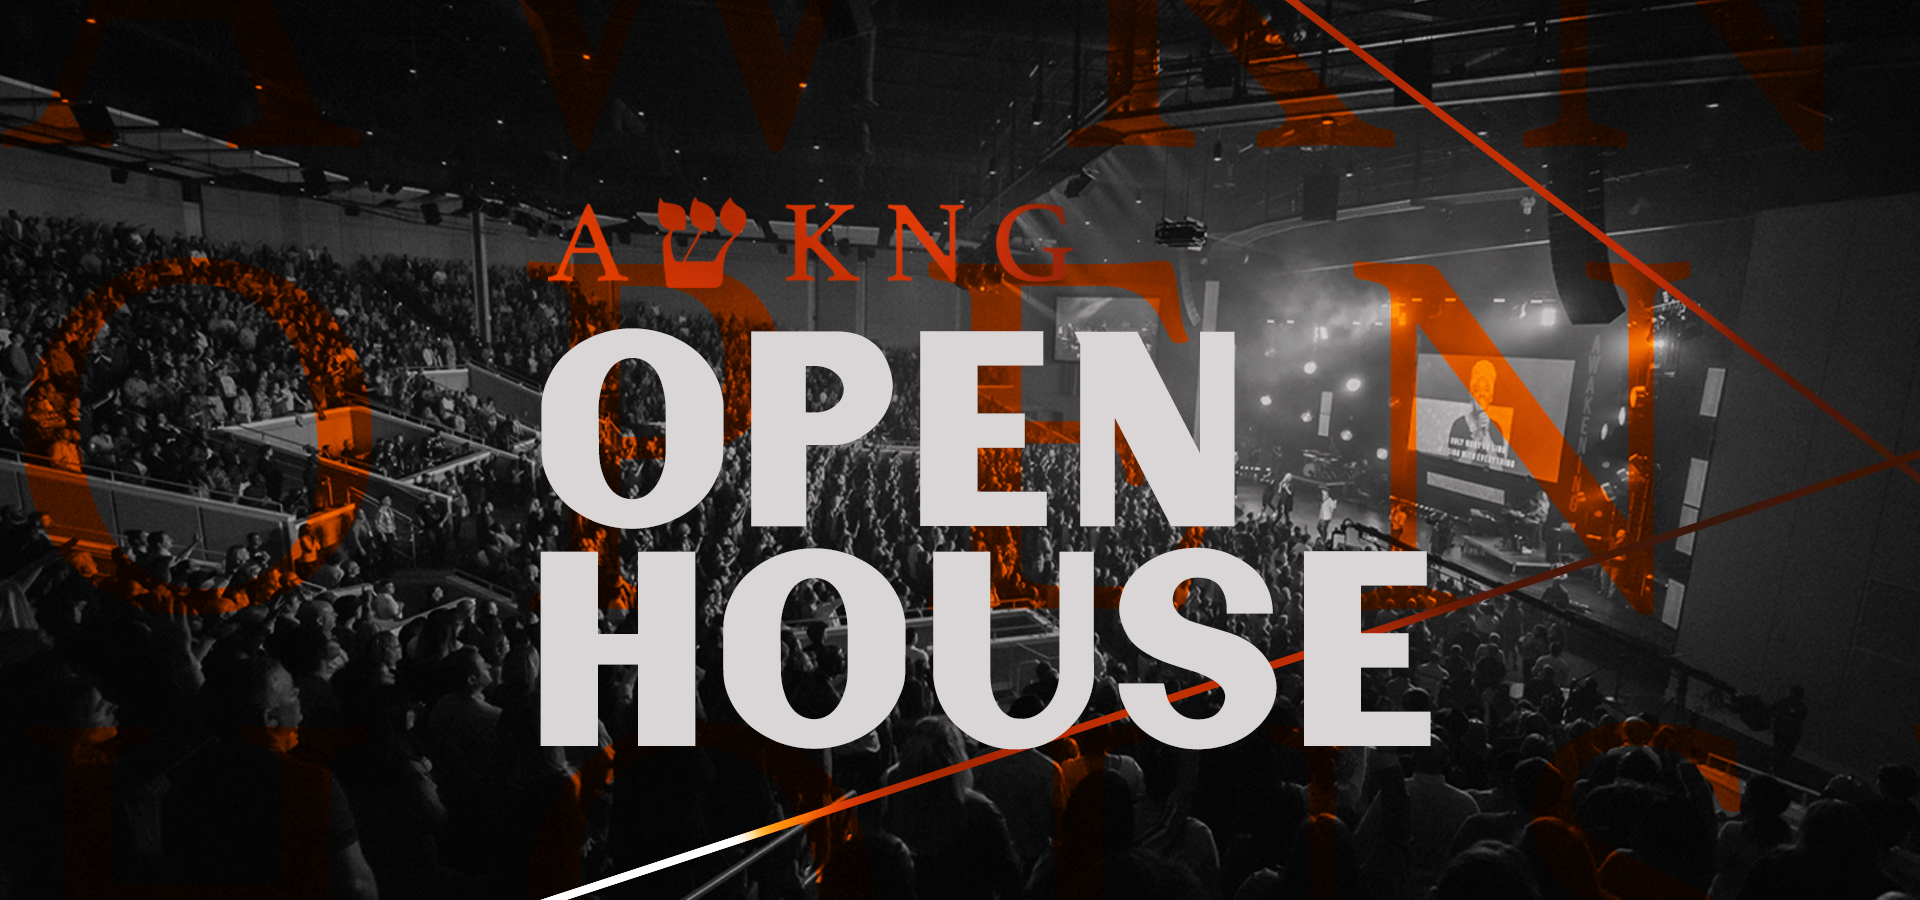 Awakening Open House | Returning to our First Love